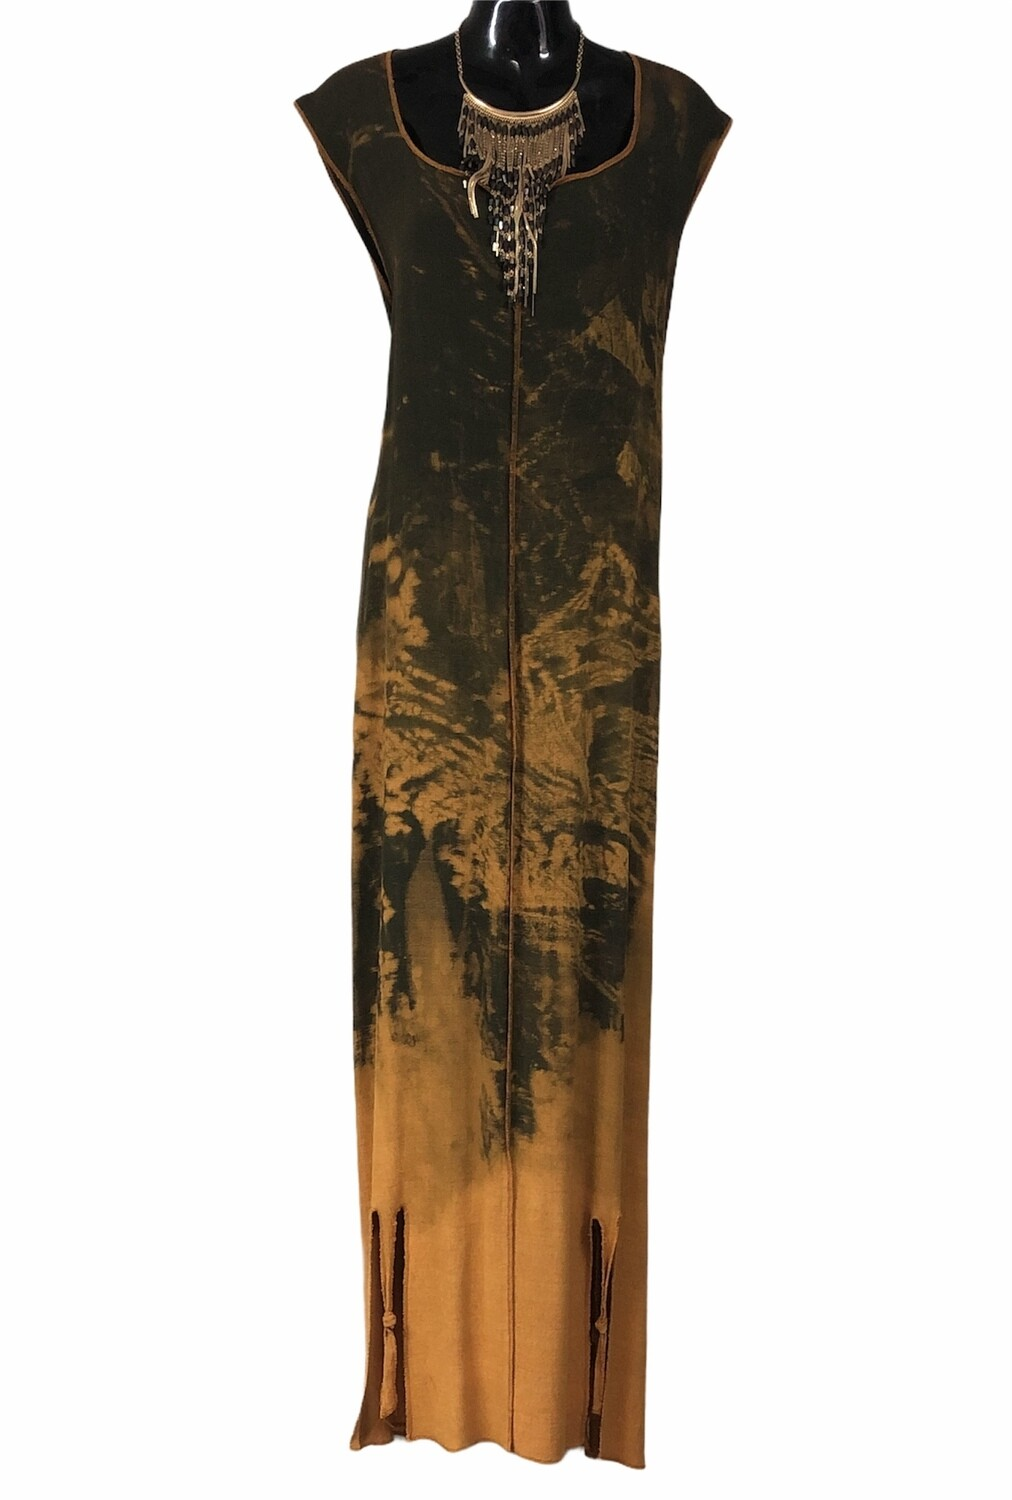 Beautiful Wearable Art Tie Dye Maxi Dress with Slit Hem XL